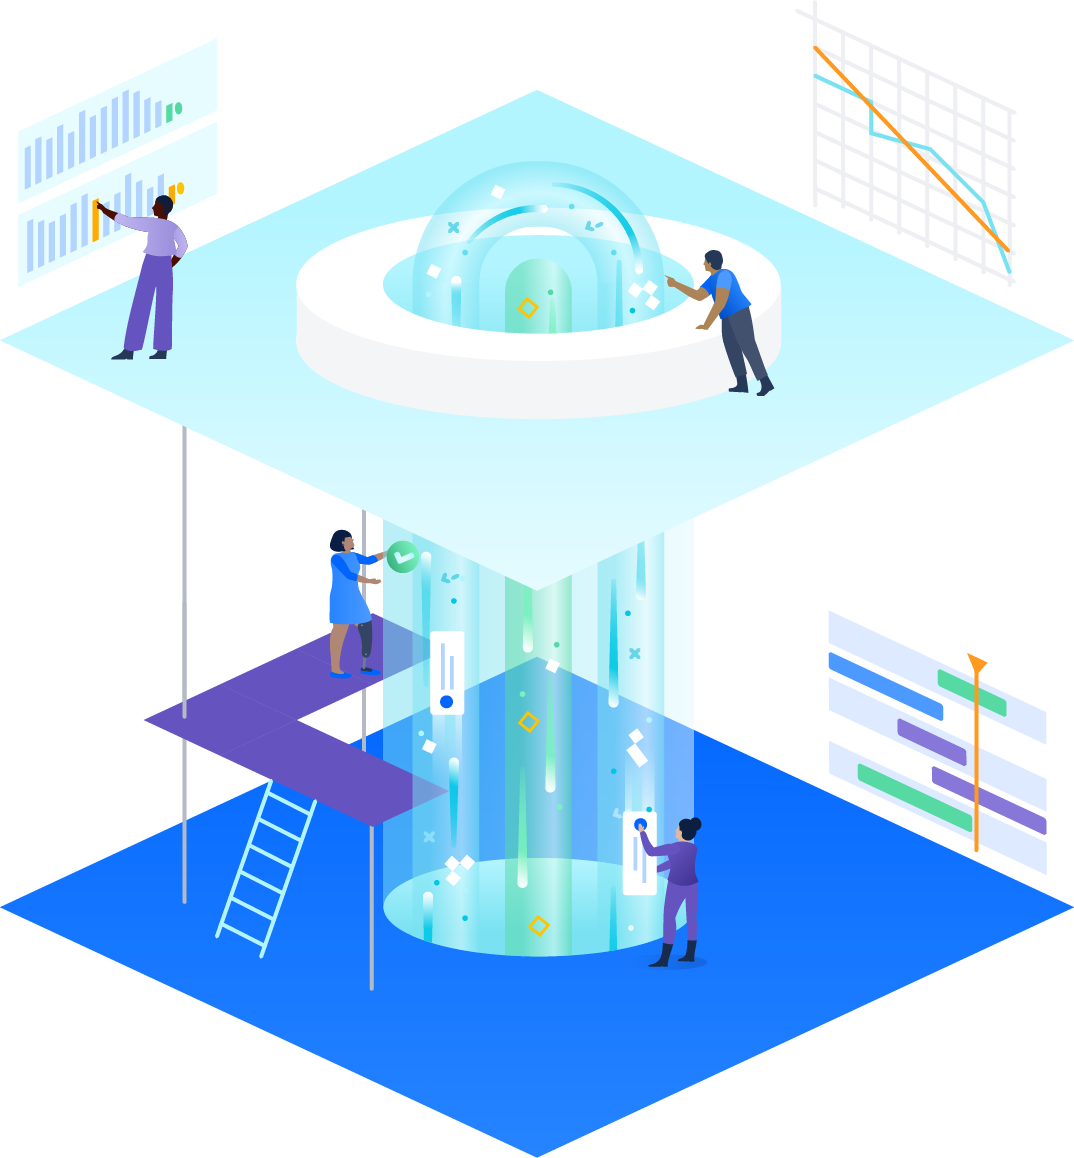 Tower with different levels of work